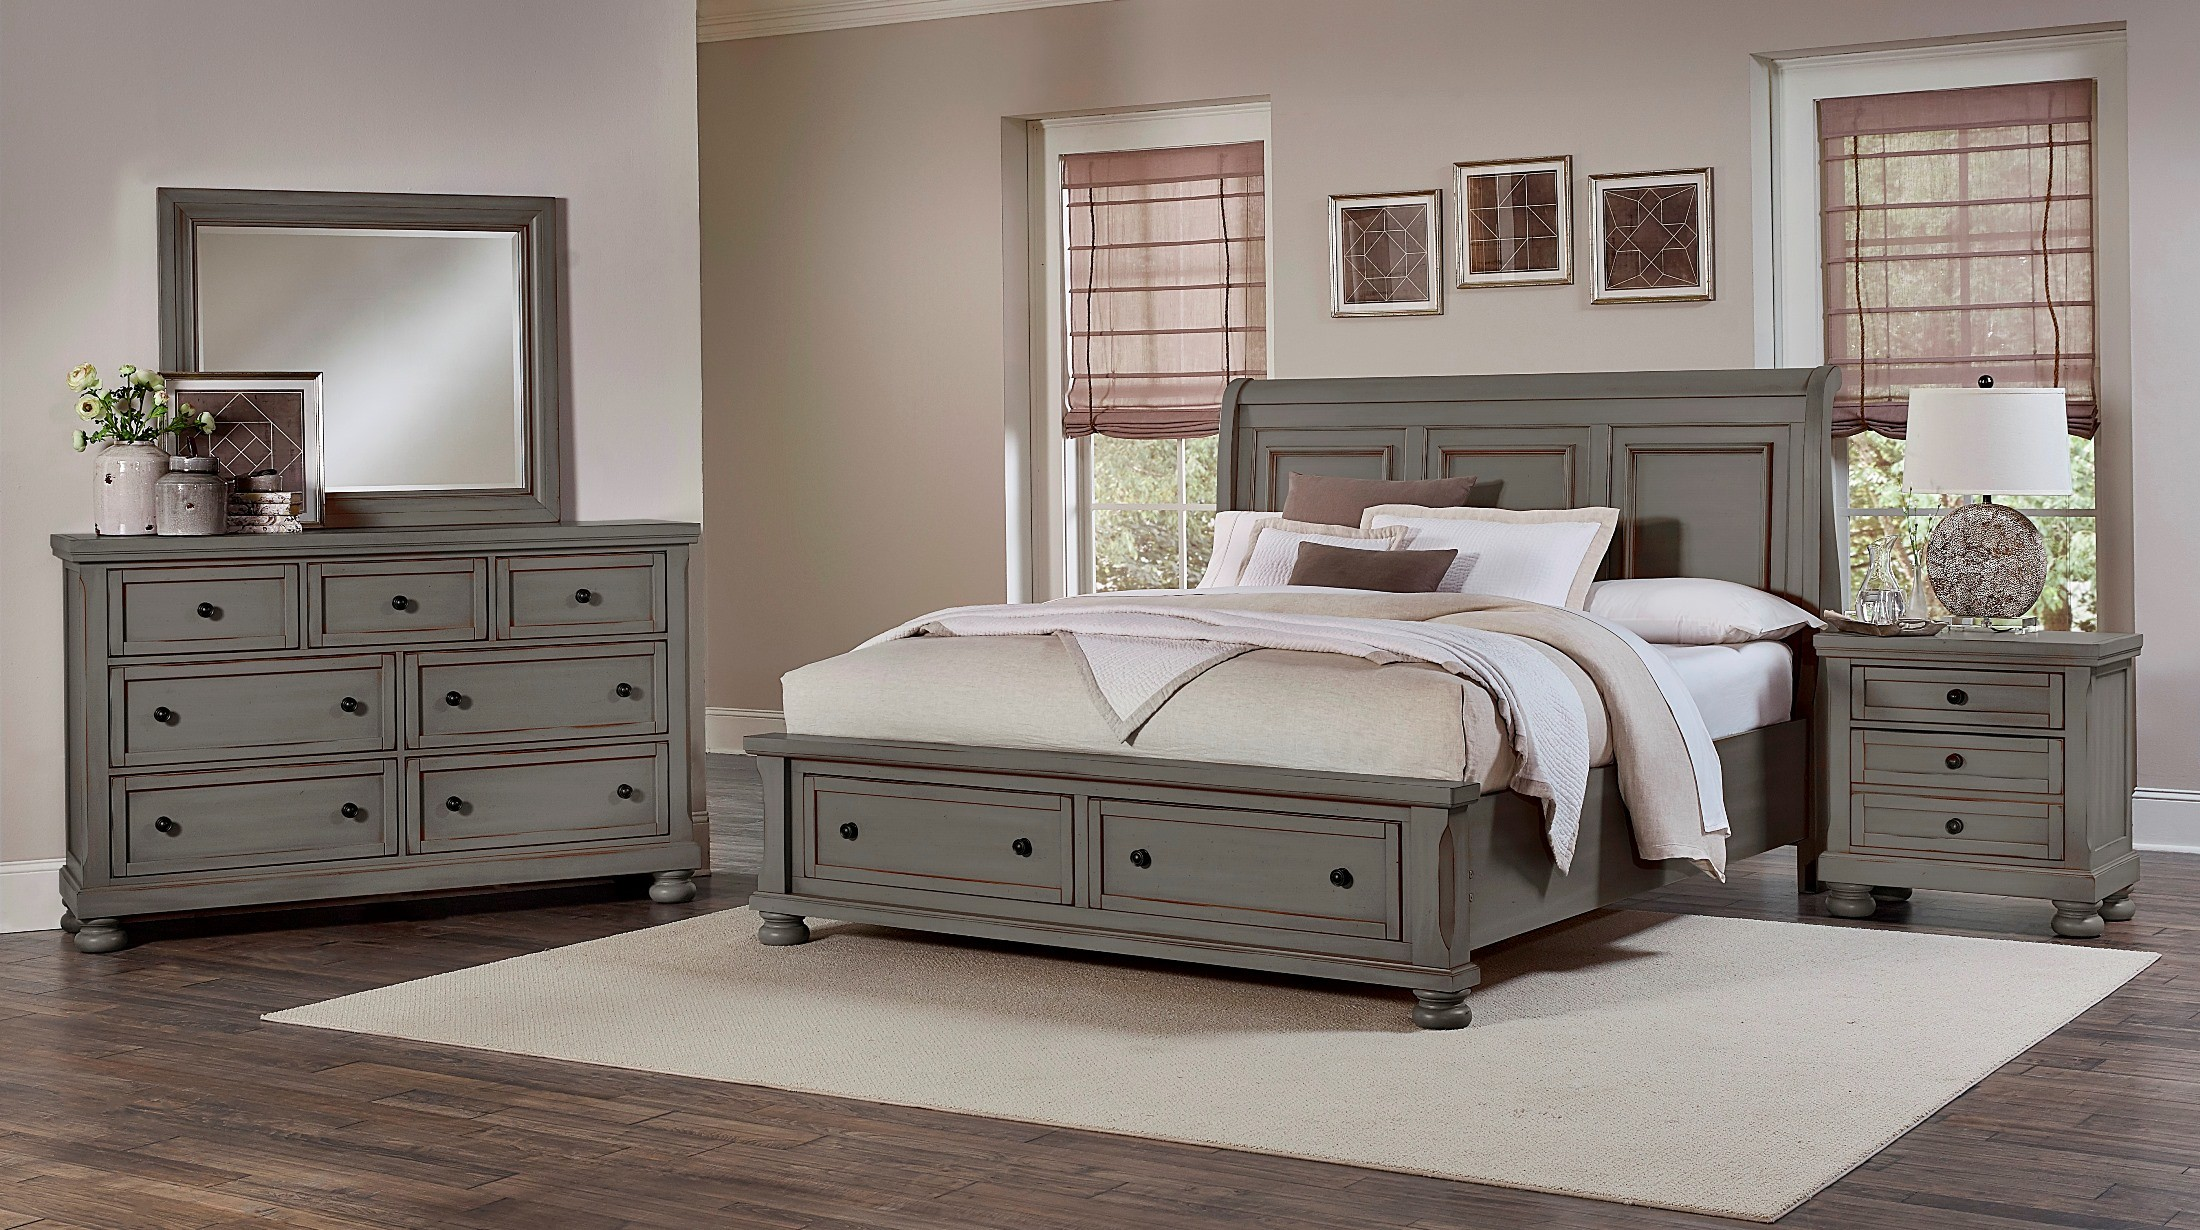 Reflections Antique Pewter Sleigh Storage Bedroom Set From Vaughn Bassett Coleman Furniture